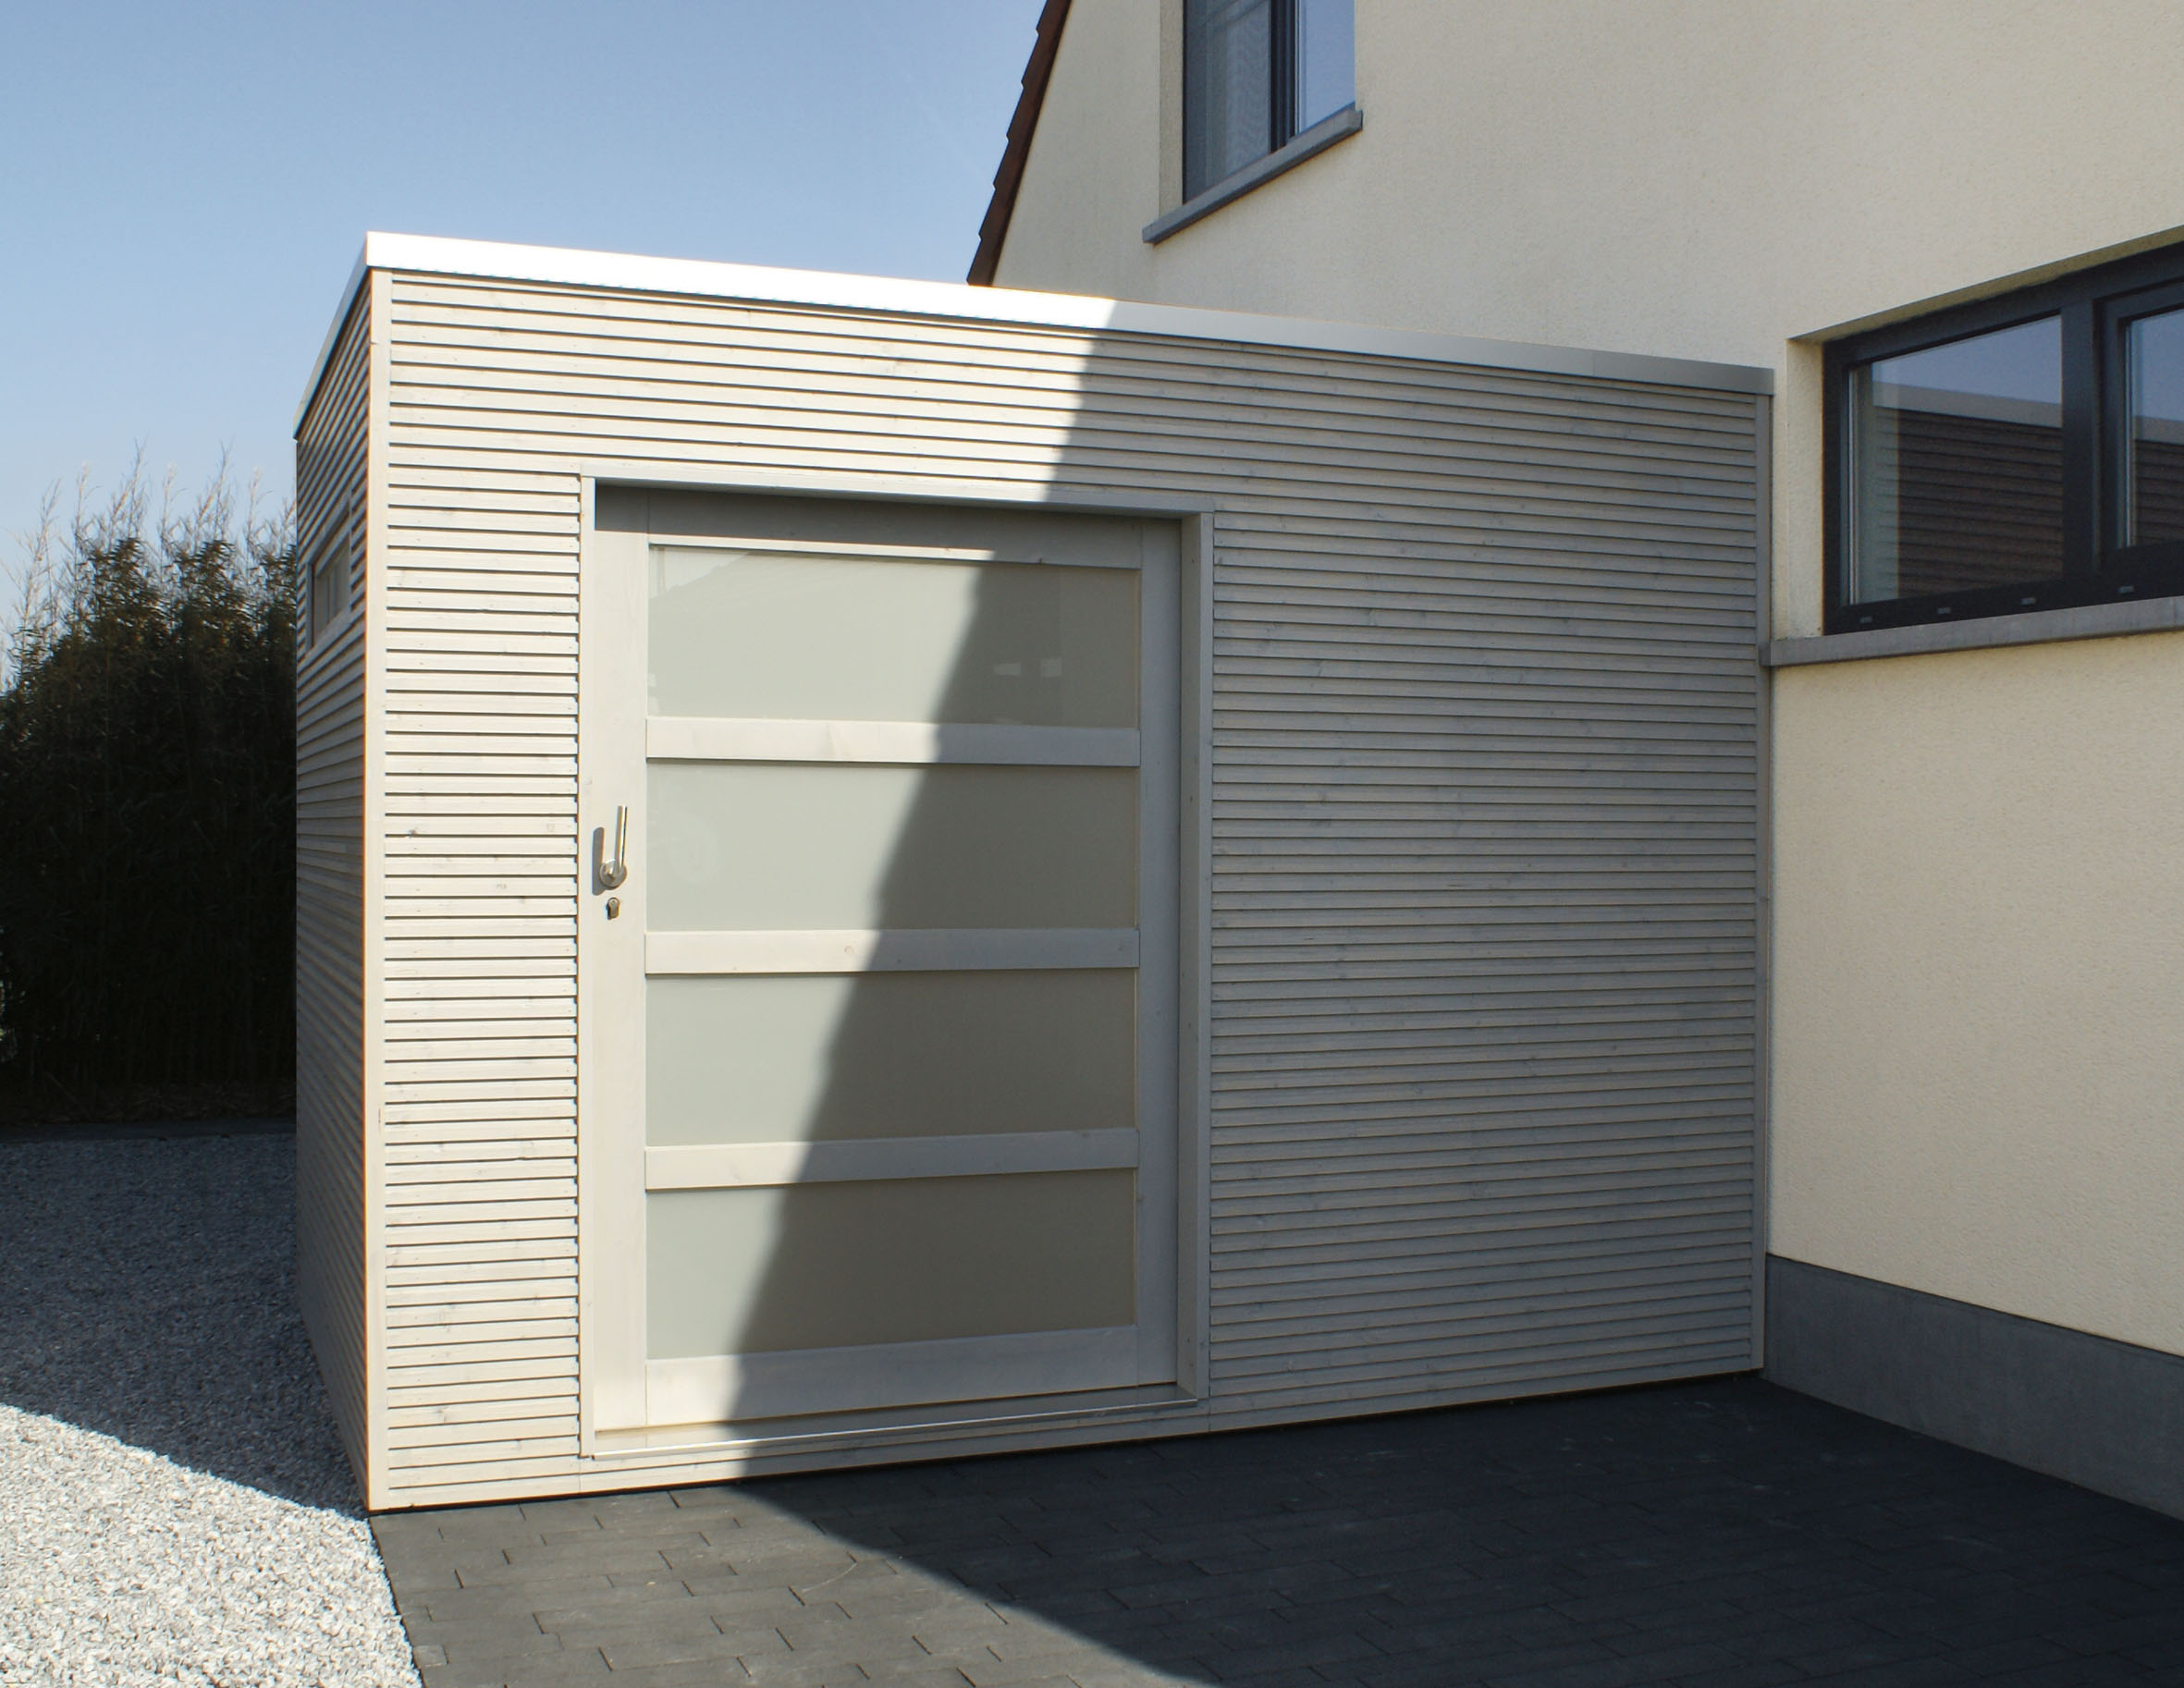 Cube th leman - Porte de garage coulissante 300x200 ...